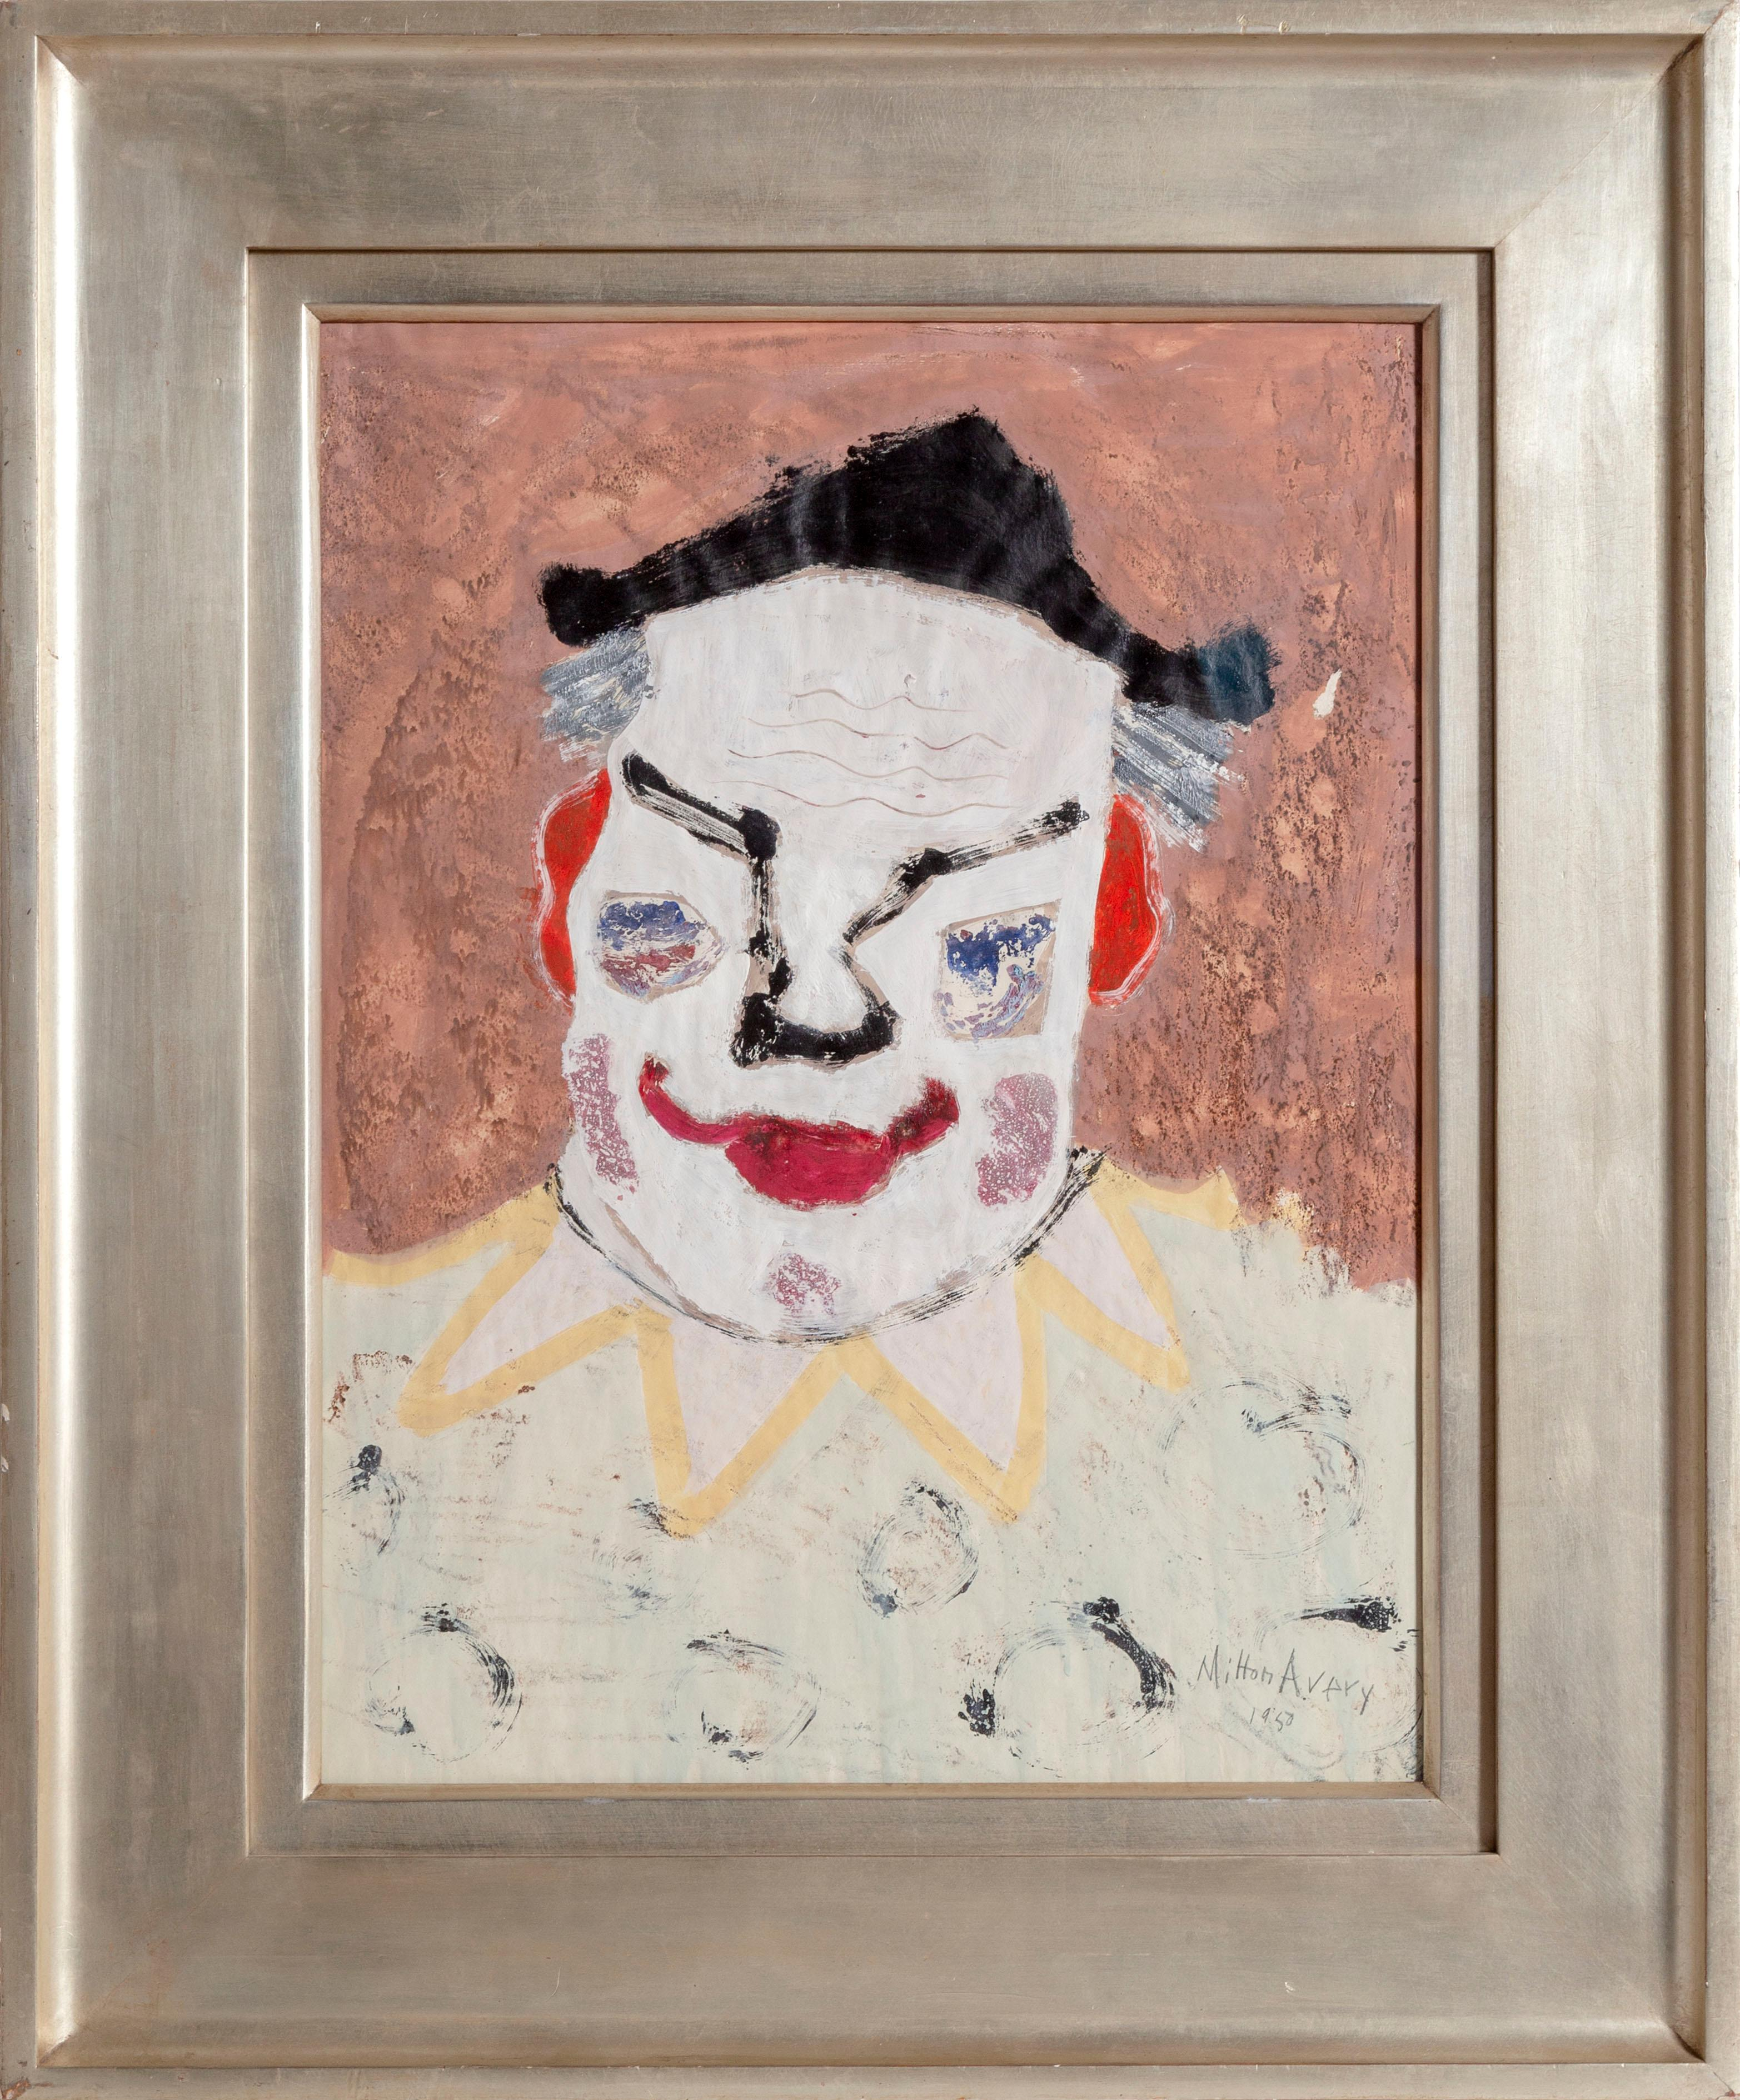 Clown Paintings - 109 For Sale on 1stdibs